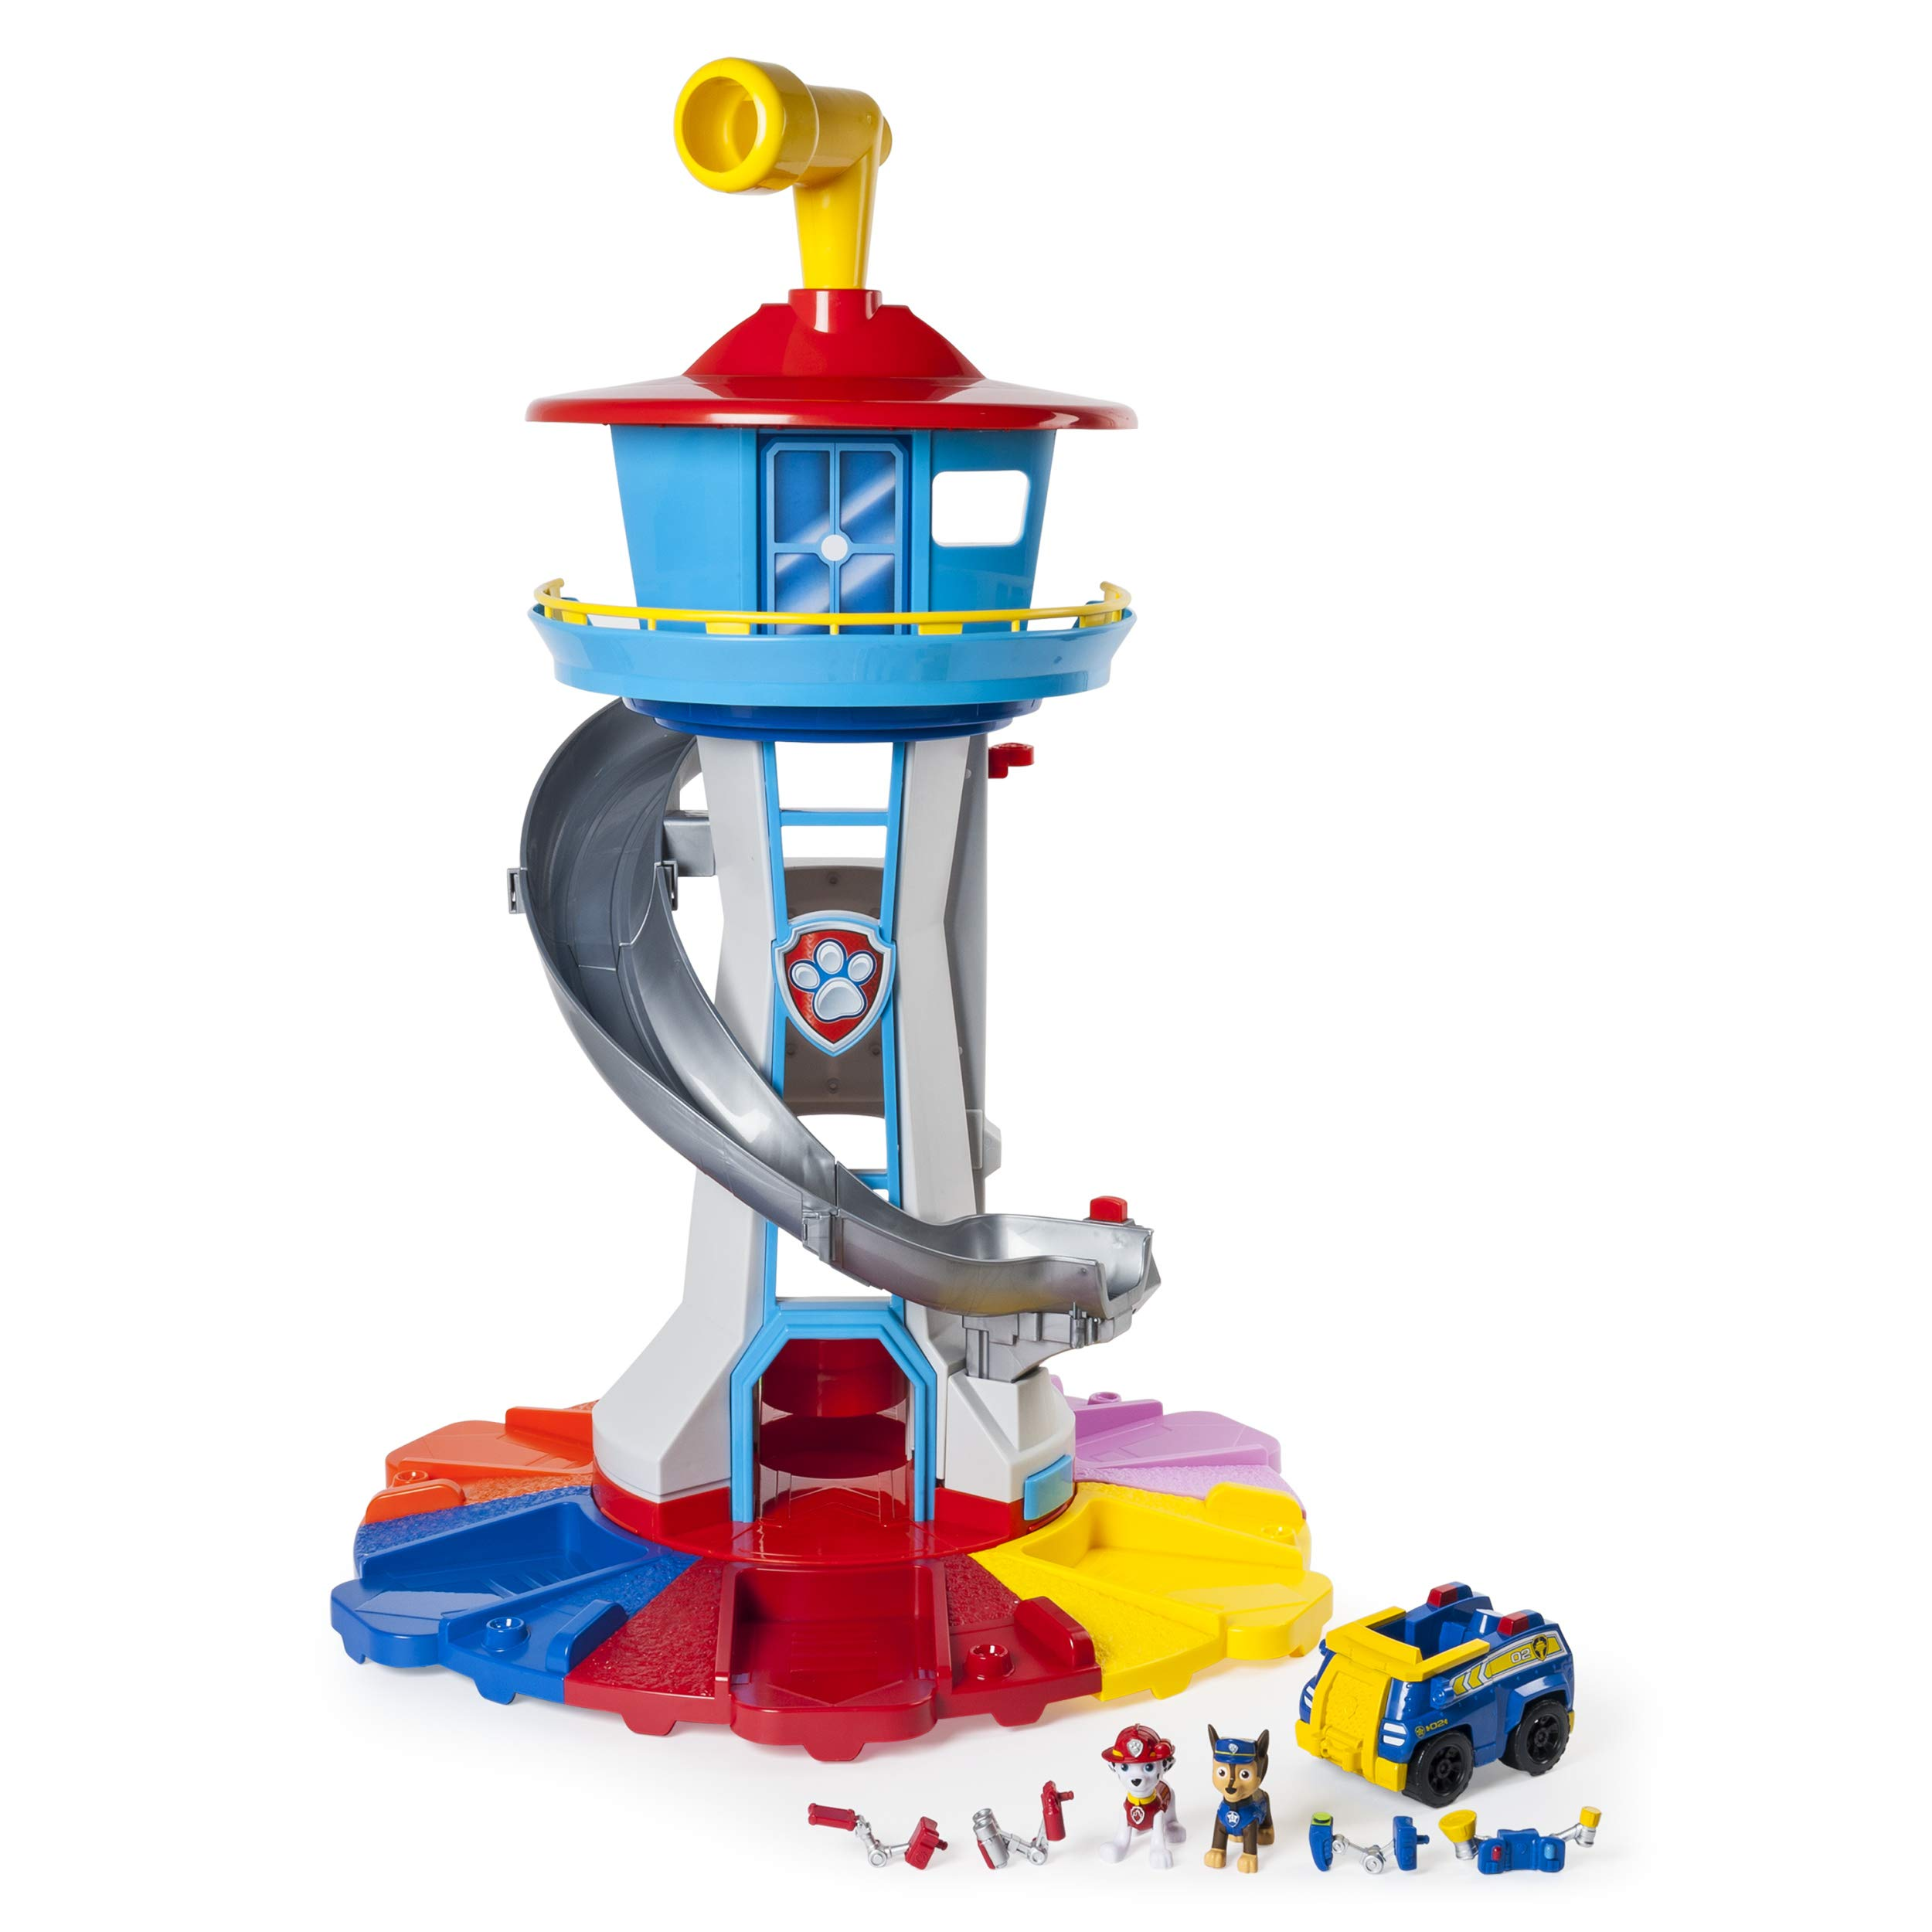 PAW Patrol My Size Lookout Tower with Exclusive Vehicle, Rotating Periscope & Lights & Sounds by Nickelodeon (Image #1)